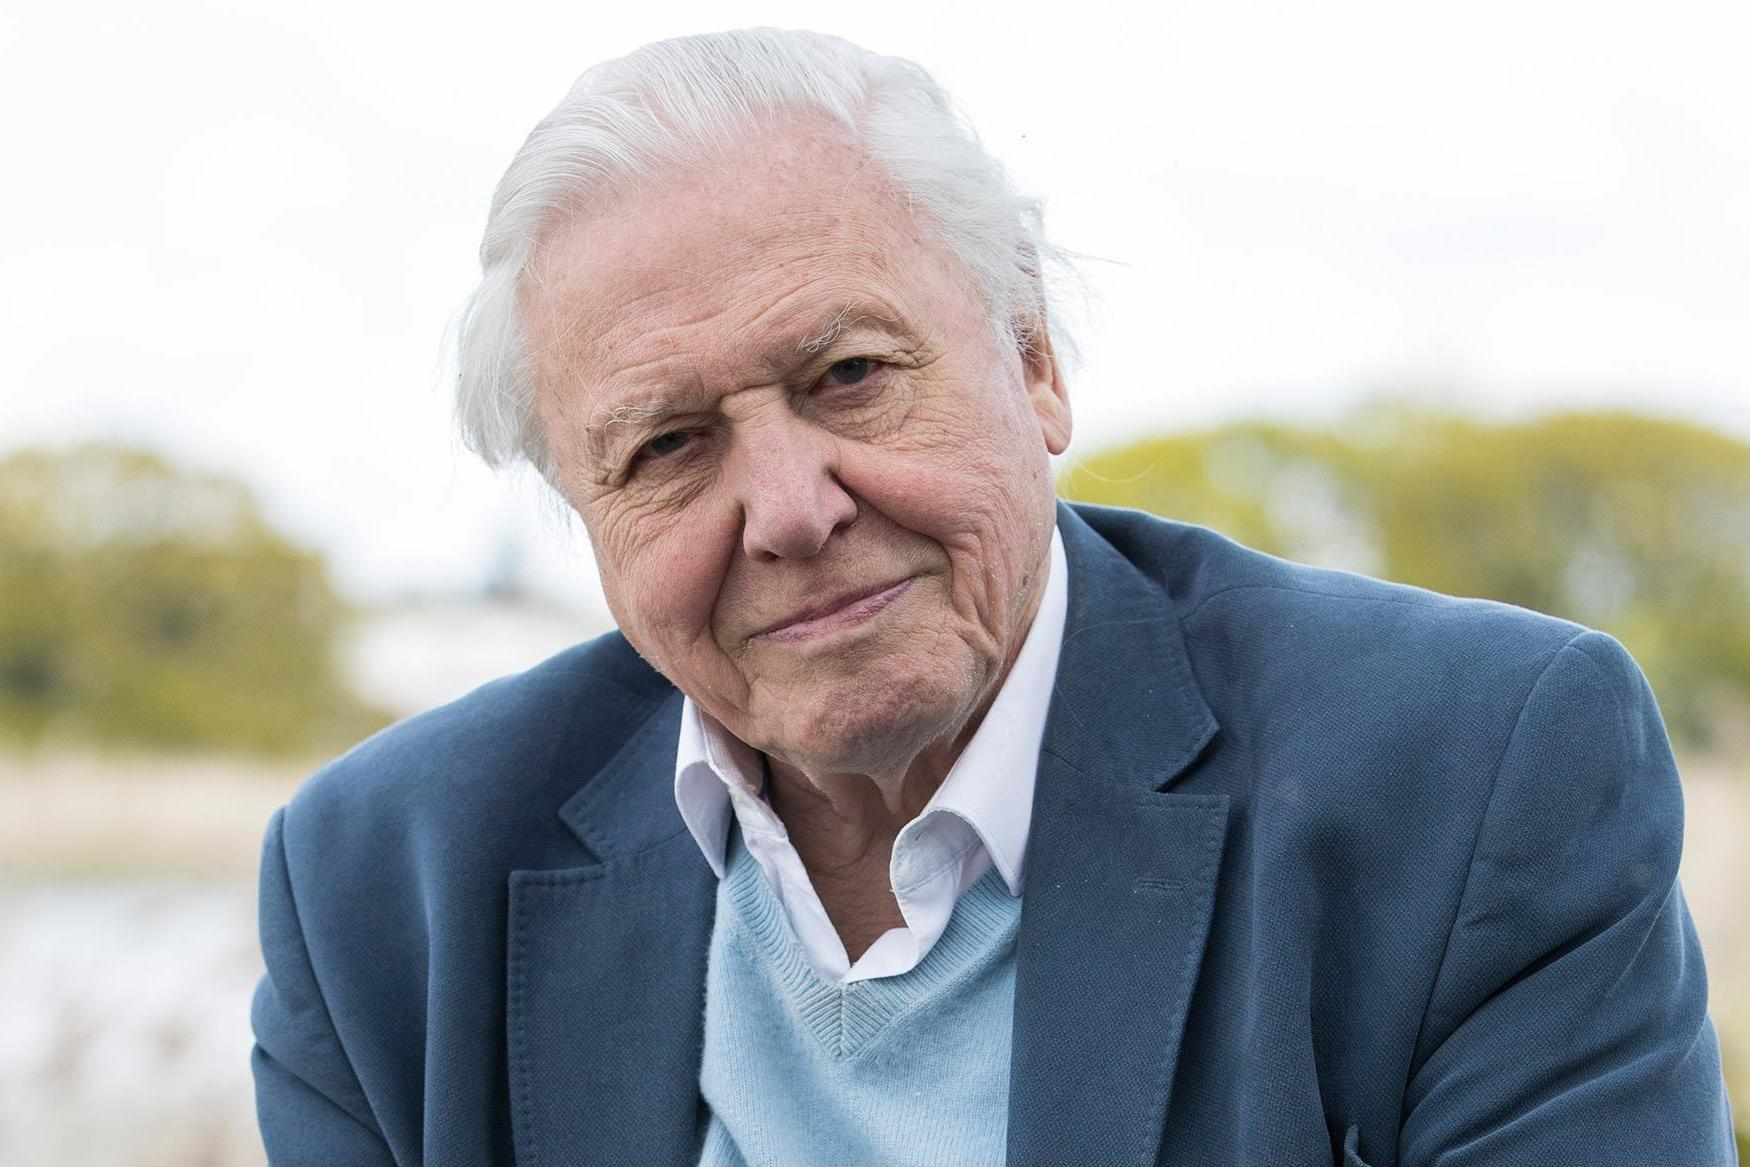 Watching David Attenborough documentaries just as good for you as mindfulness, study finds